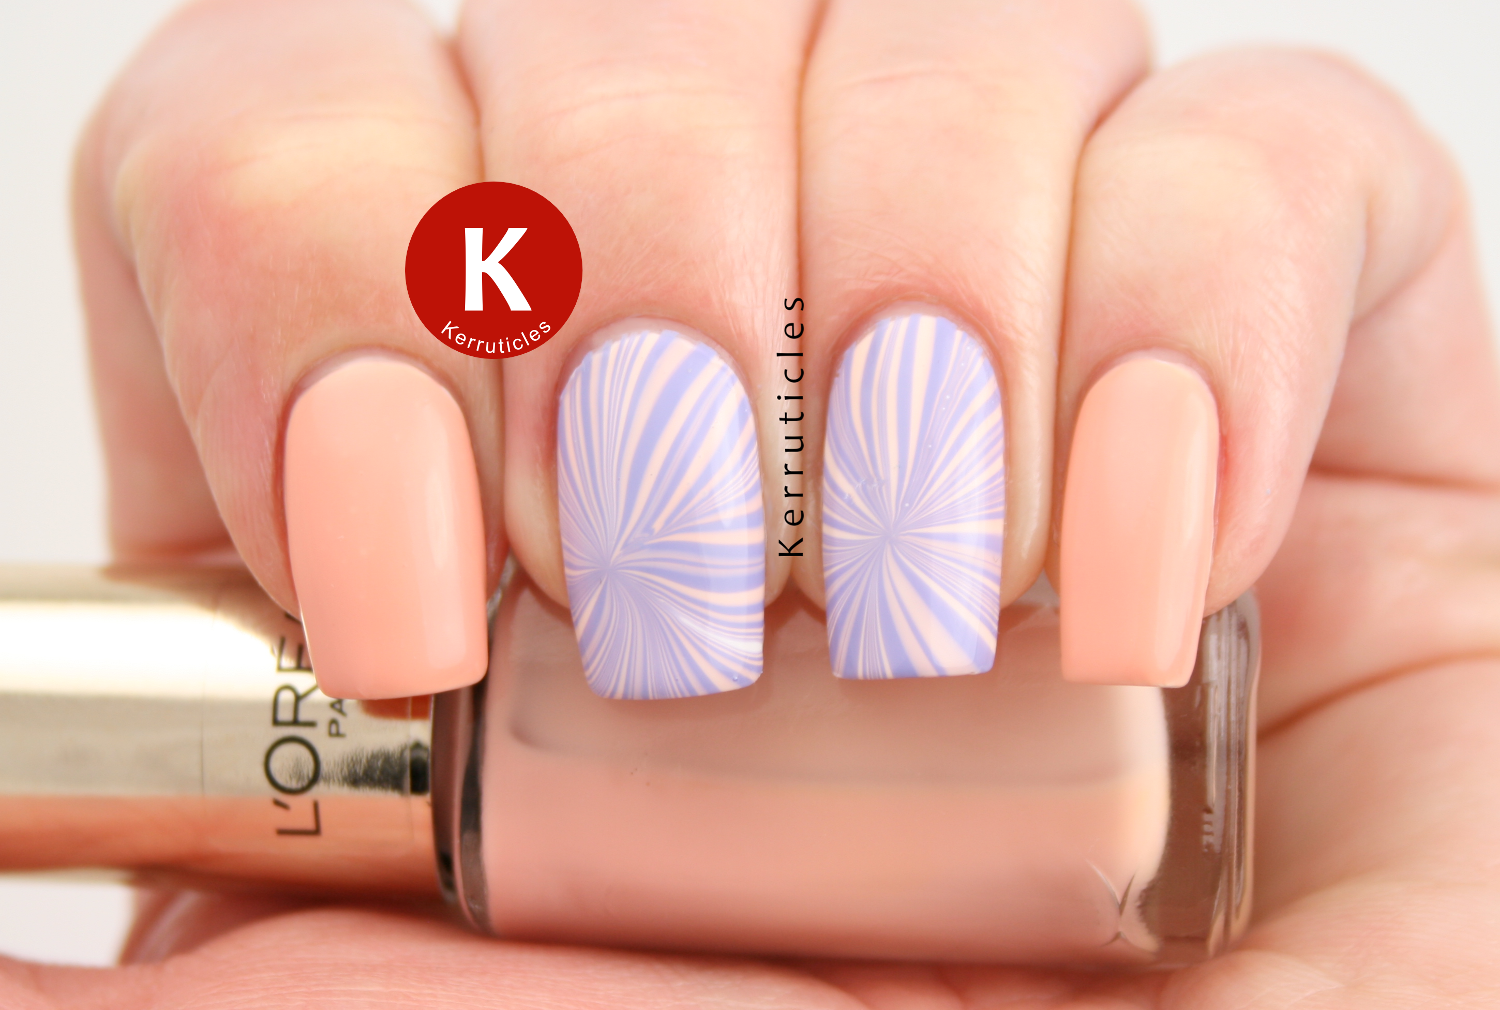 L'Oreal peach lilac pastel starburst water marble